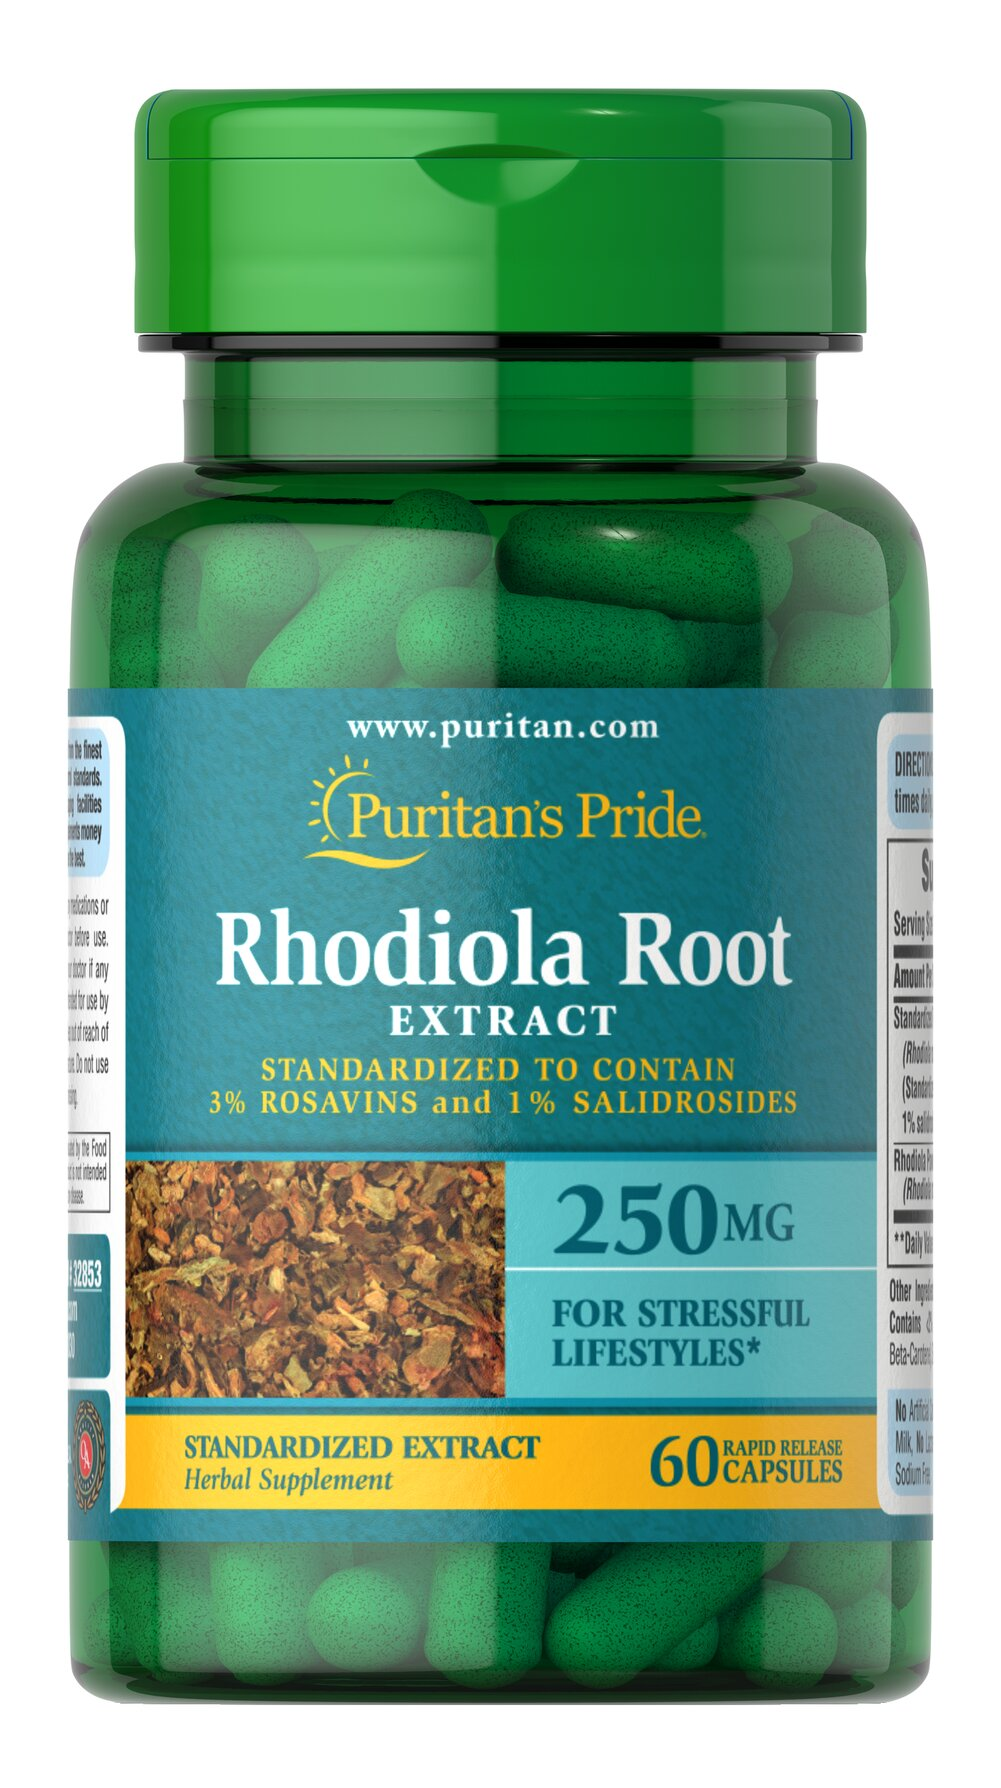 Rhodiola Standardized Extract 250 mg <p><strong>Contains 3% of the active ingredient ROSAVINS</strong></p><p>Rhodiola naturally contains a wide range of antioxidants</p><p>Has a long history of use as an adaptogen</p><p>Our full potency formula is especially good for those with stressful lifestyles**</p><p>Rapid Release capsules disperse quickly into your system</p><p>A perfect choice for vegetarian lifestyles</p&gt